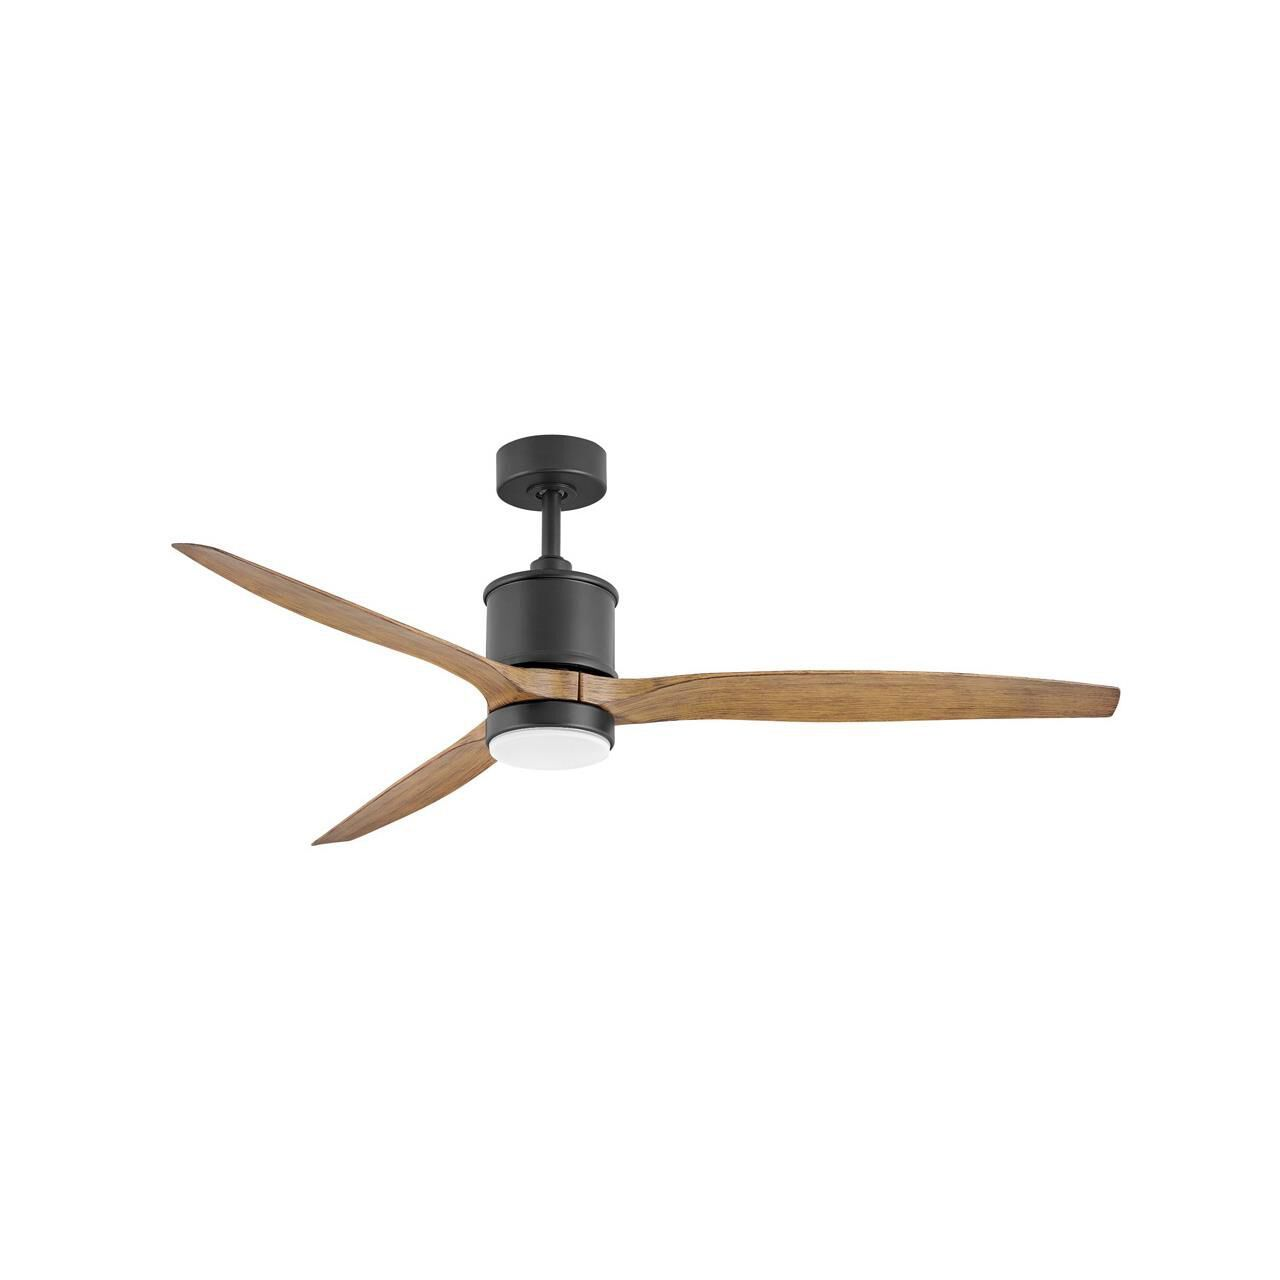 Hover Outdoor Rated 60 Inch Ceiling Fan With Light Kit Capitol Lighting Outdoor Ceiling Fans Ceiling Fan Ceiling Fan With Light 60 inch outdoor ceiling fan